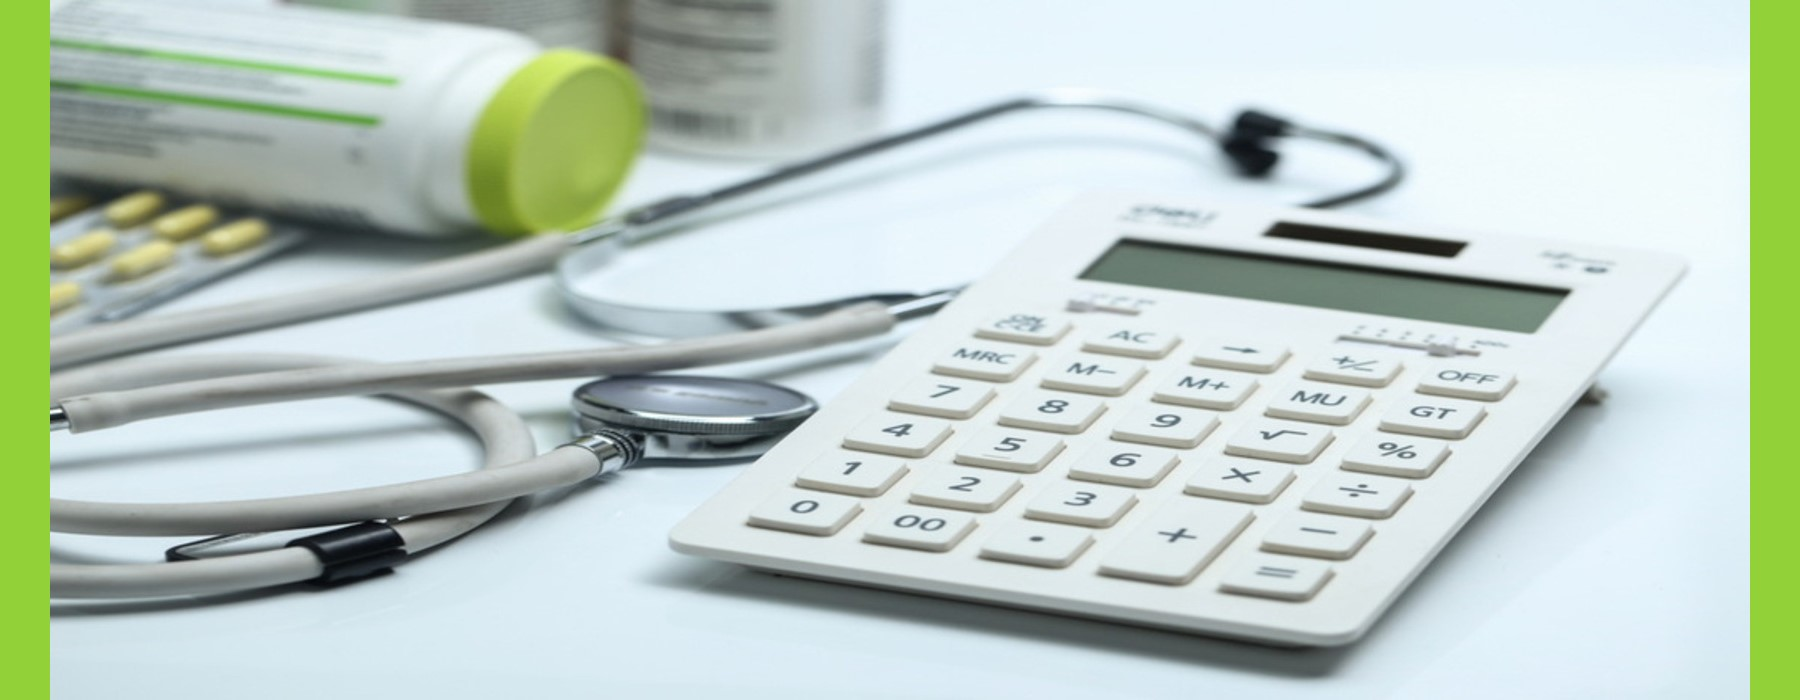 Single Platform For All Medical Calculators :